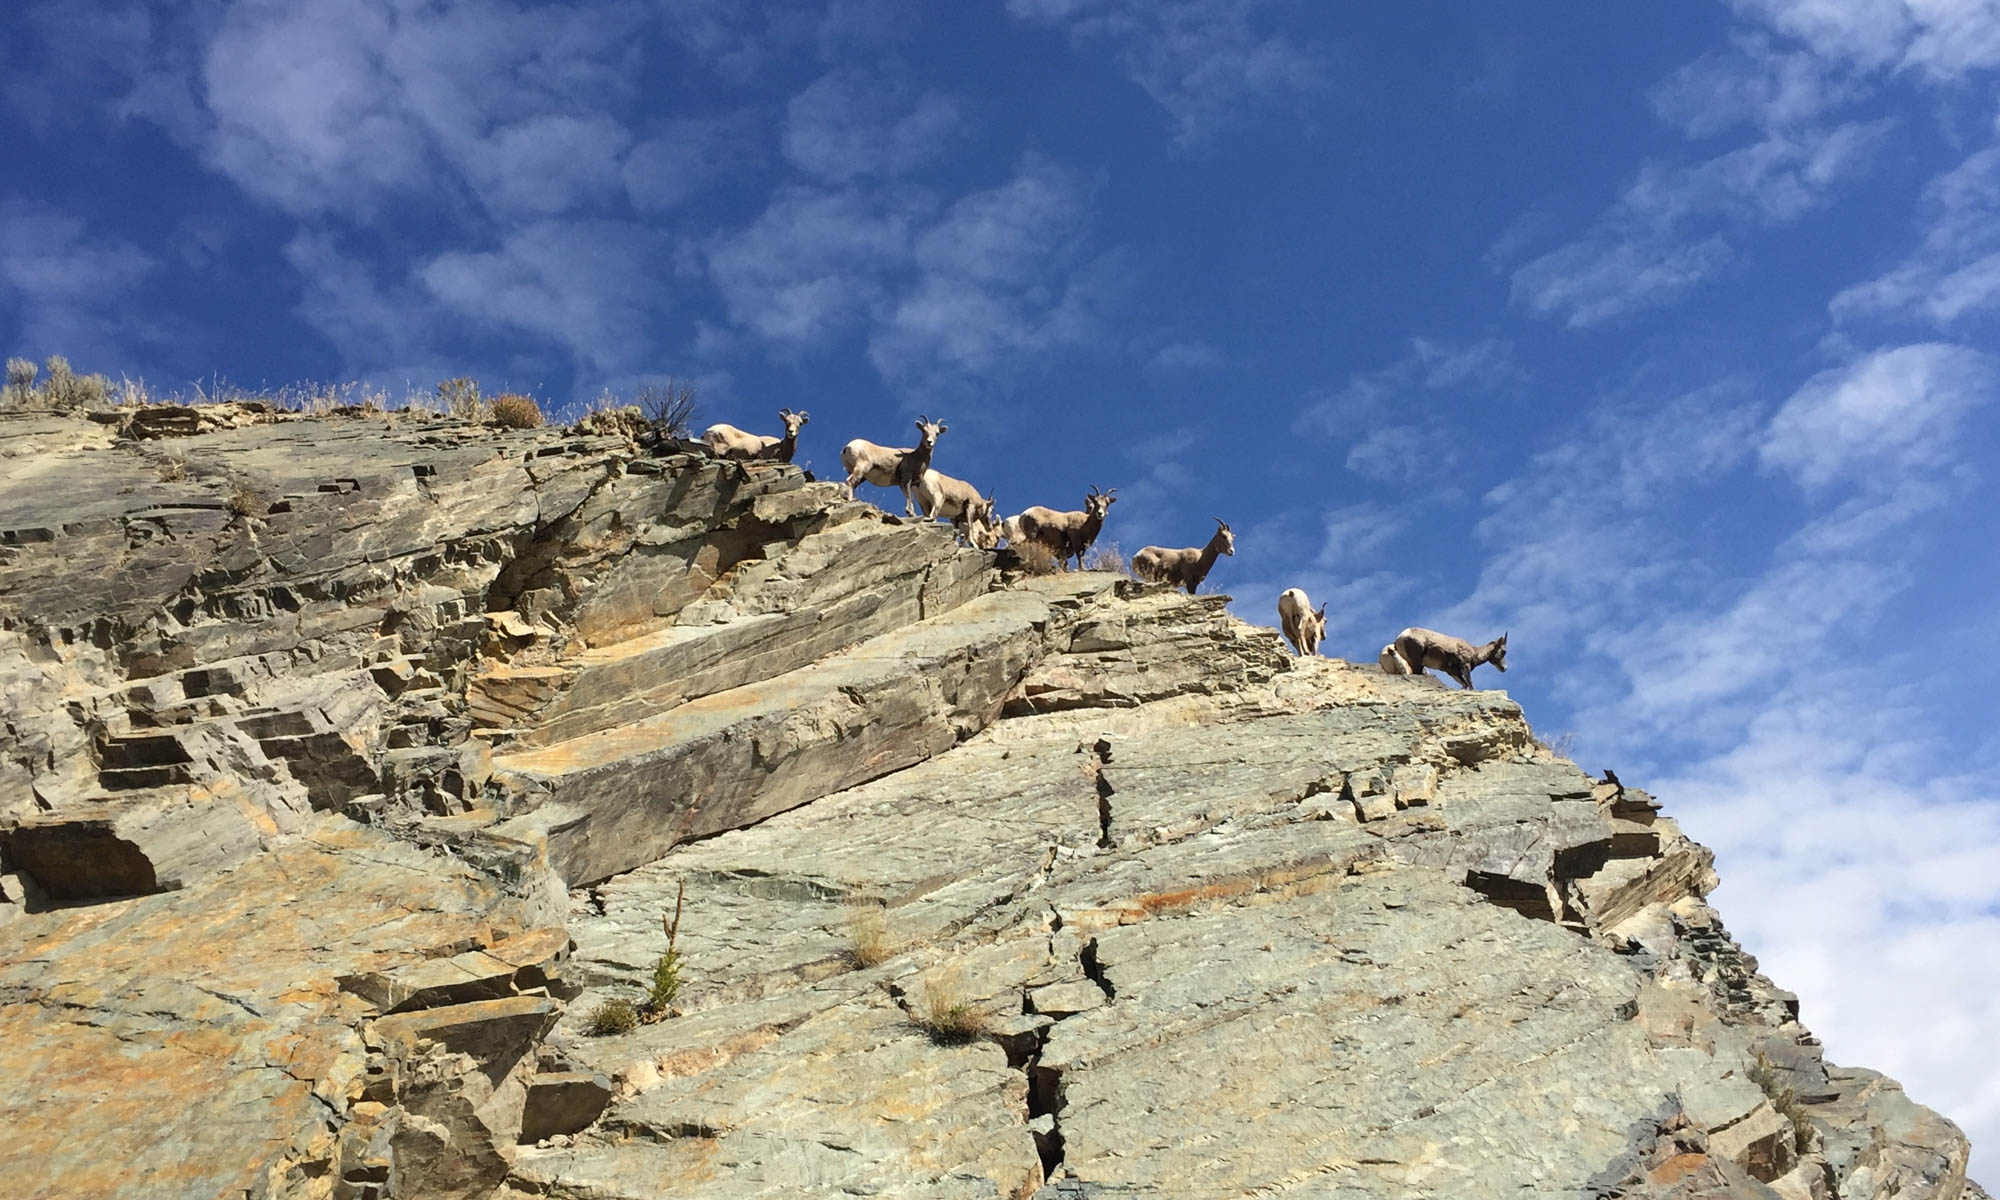 Image looking up at a rocky crag with 9 mountain sheep and blue sky above